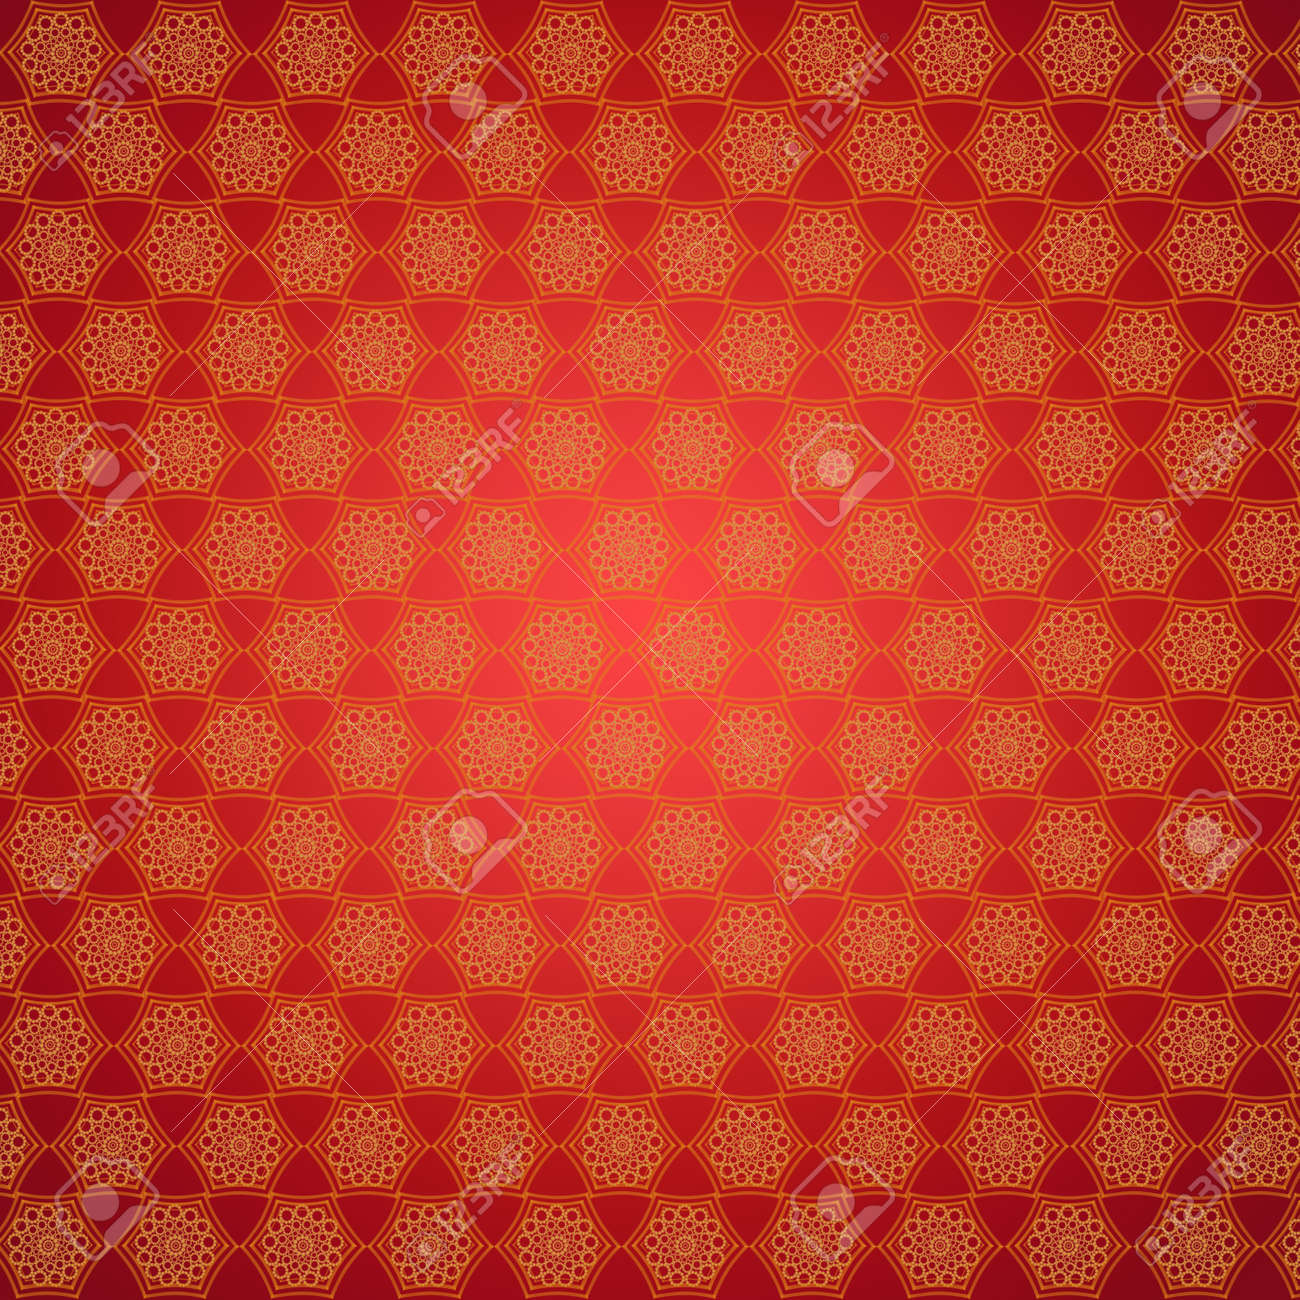 Wallpapers With Many Round Abstract Golden Patterns Stock Photo